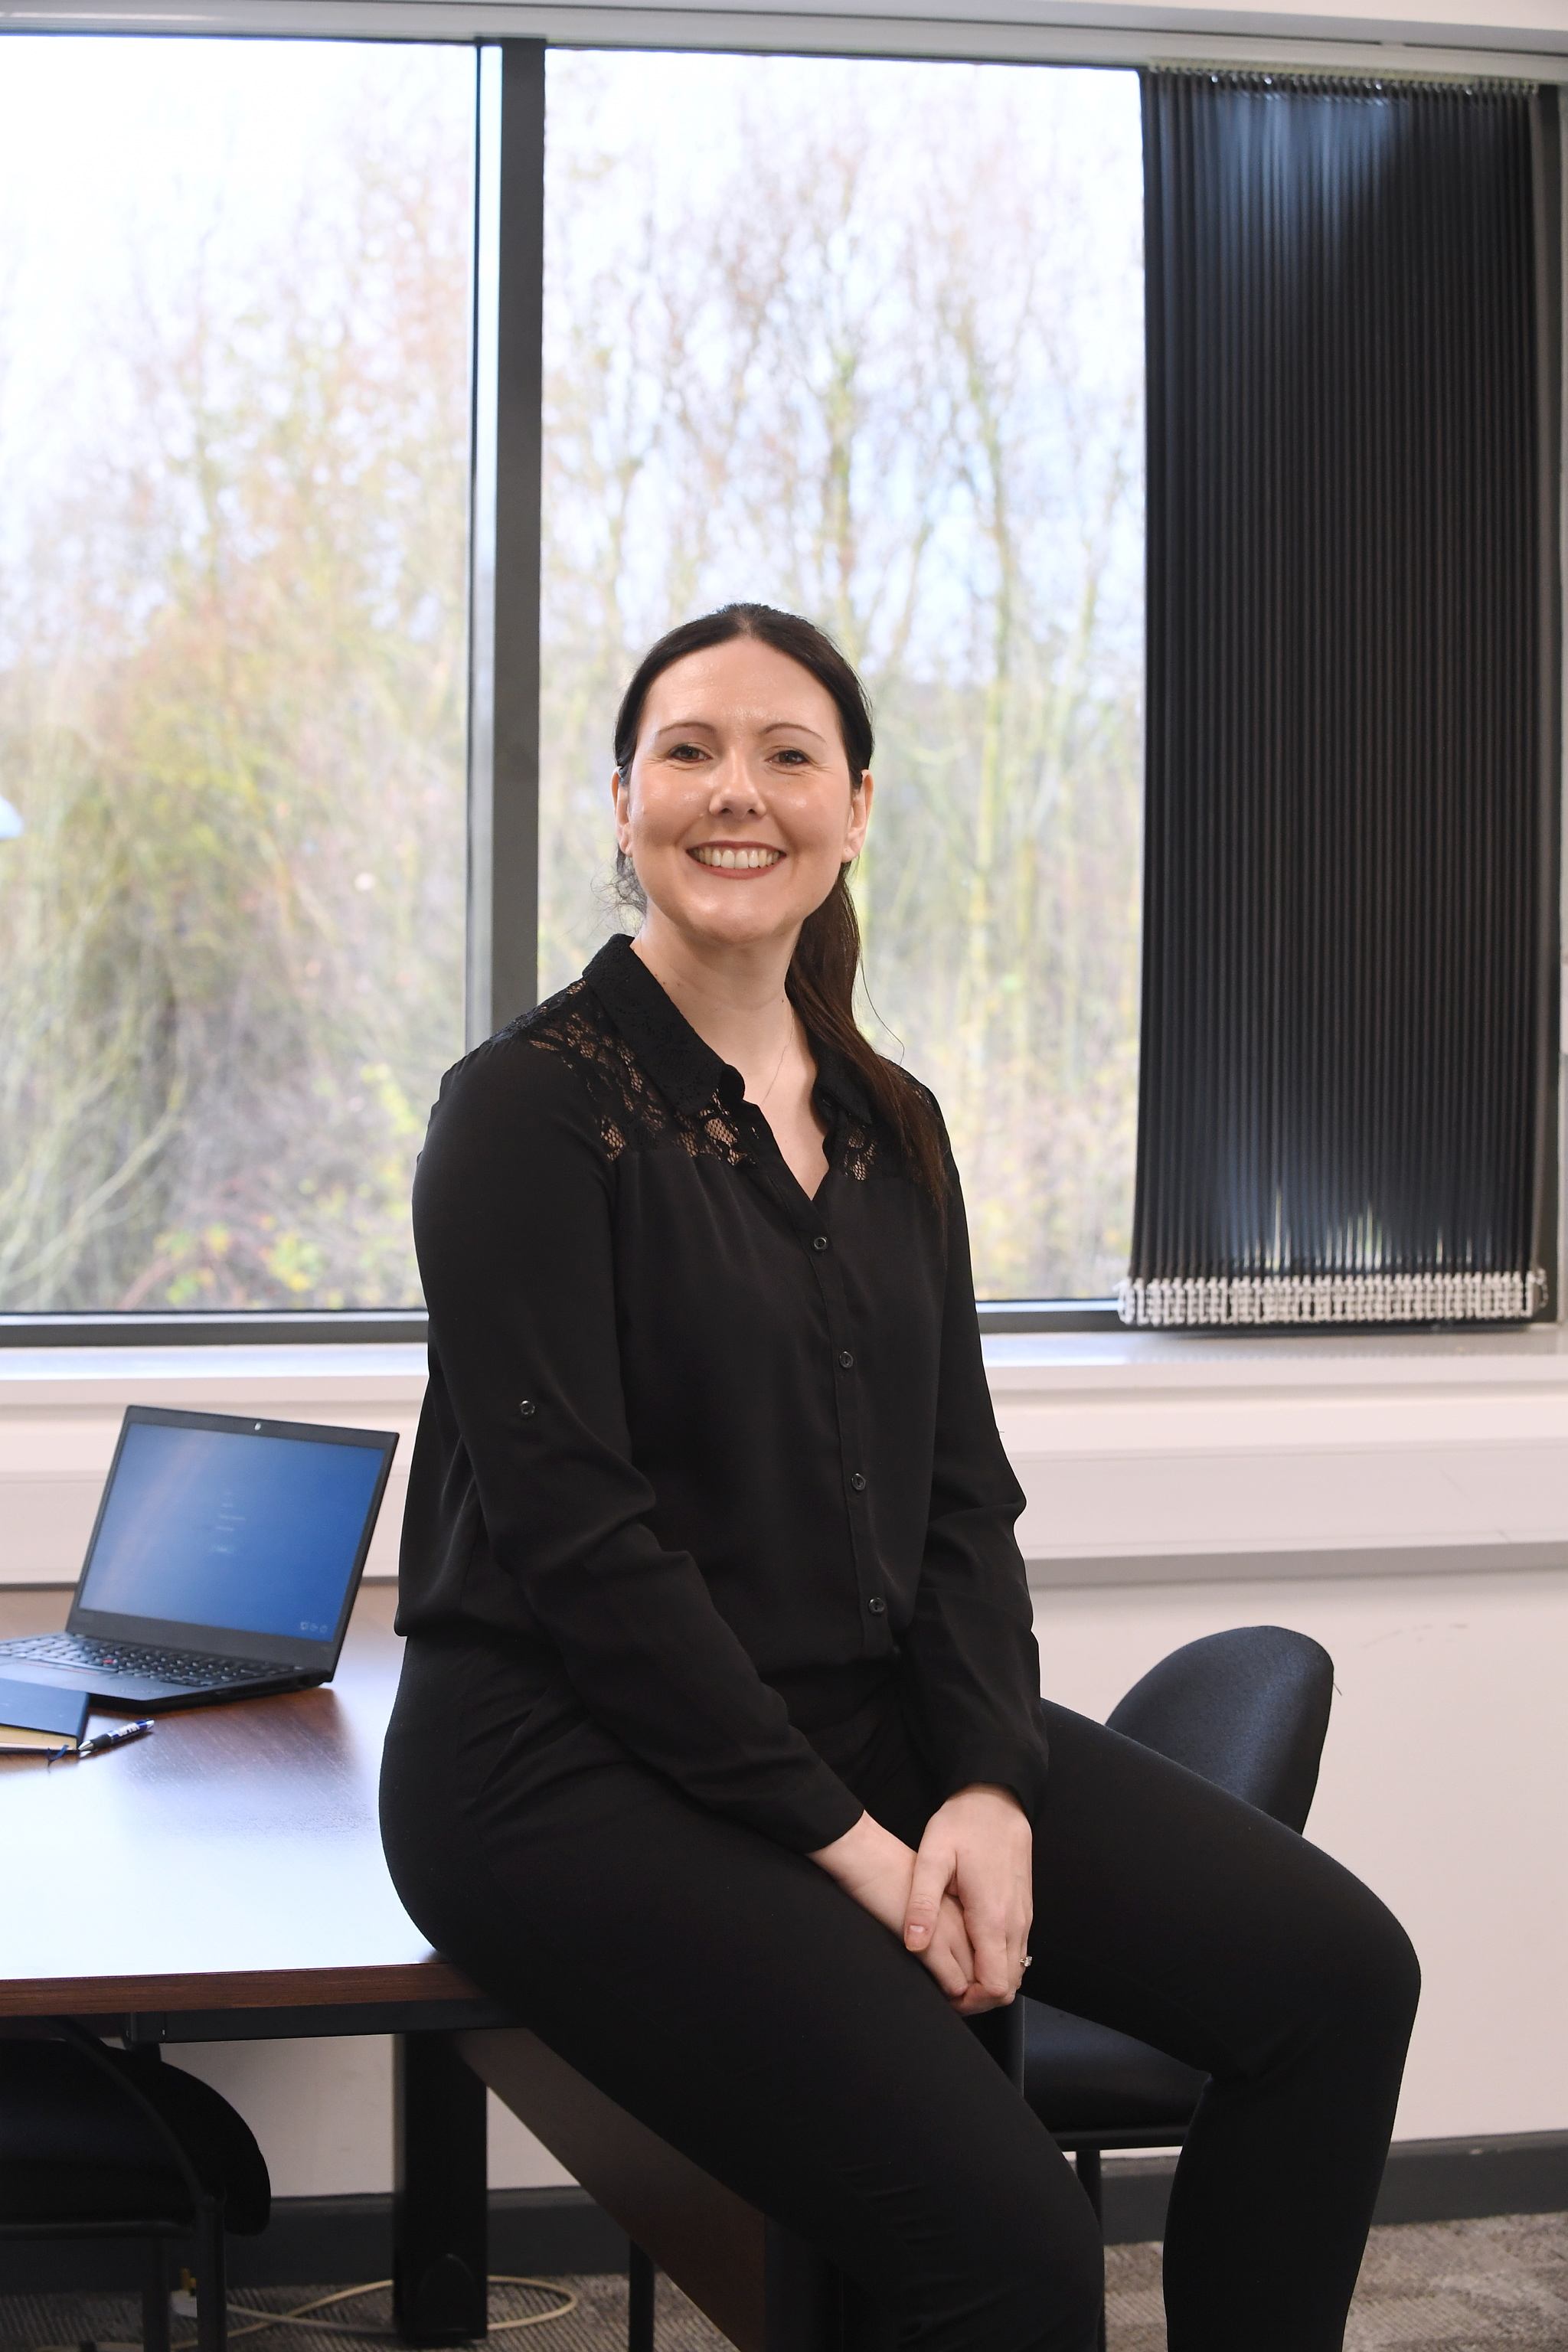 Leicestershire-based online flooring retailer appoints new Chief Commercial Officer after meteoric rise